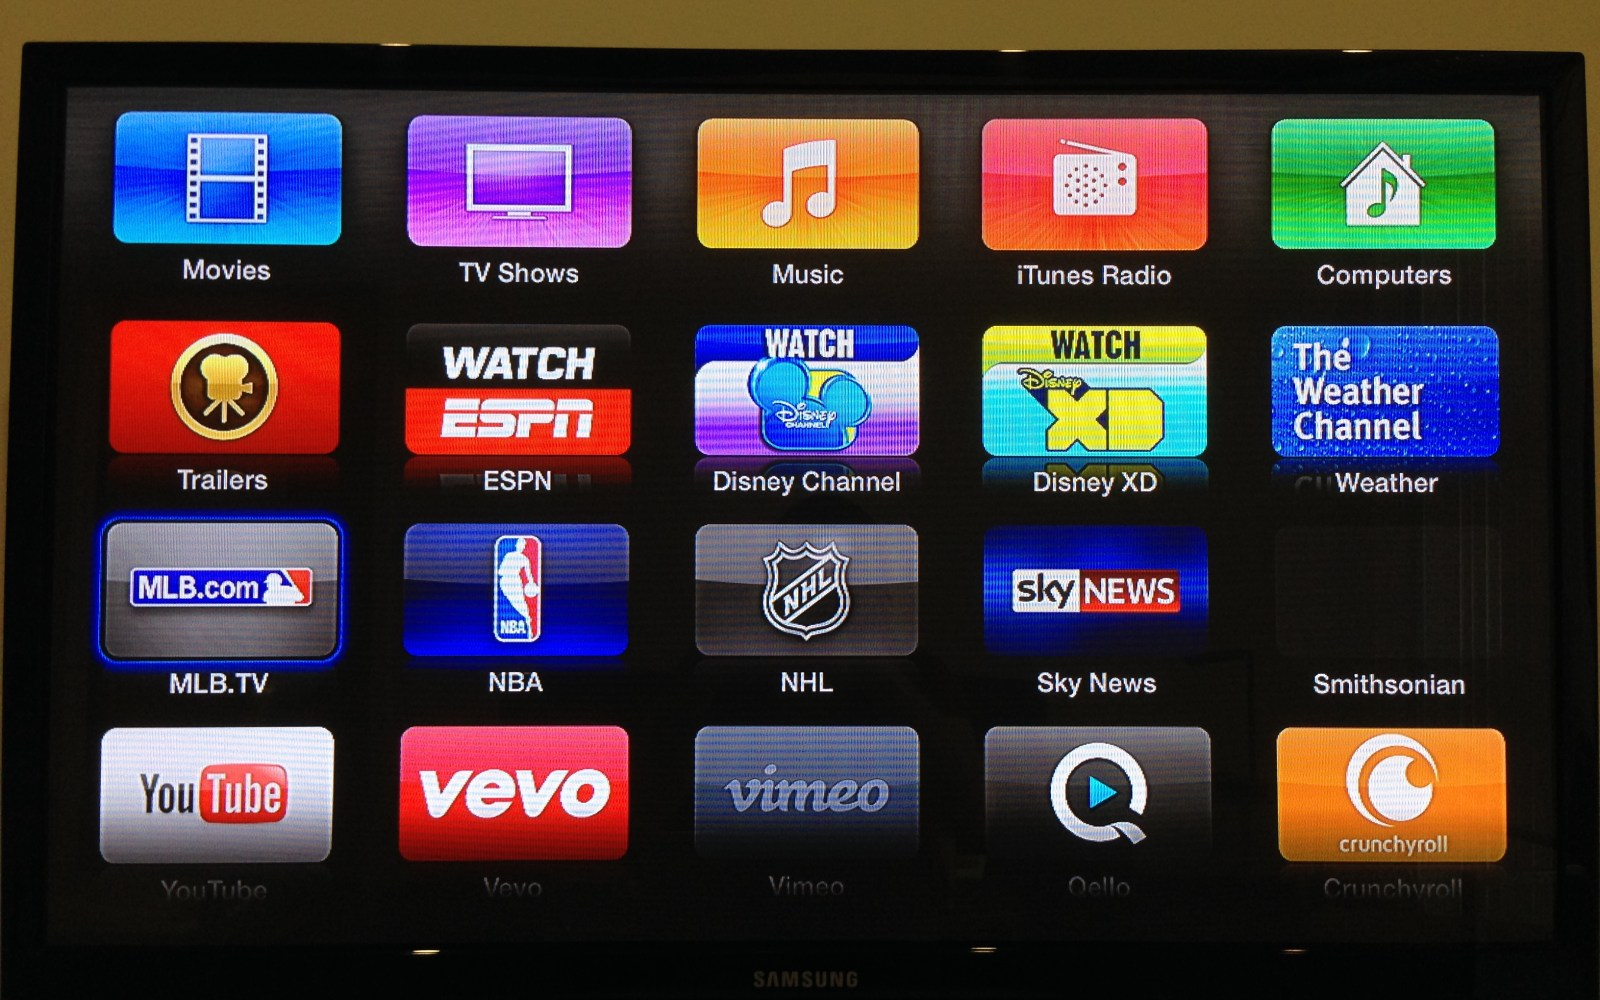 Apple TV updated with Vevo, Disney Channel, Disney XD, Weather Channel, Smithsonian apps